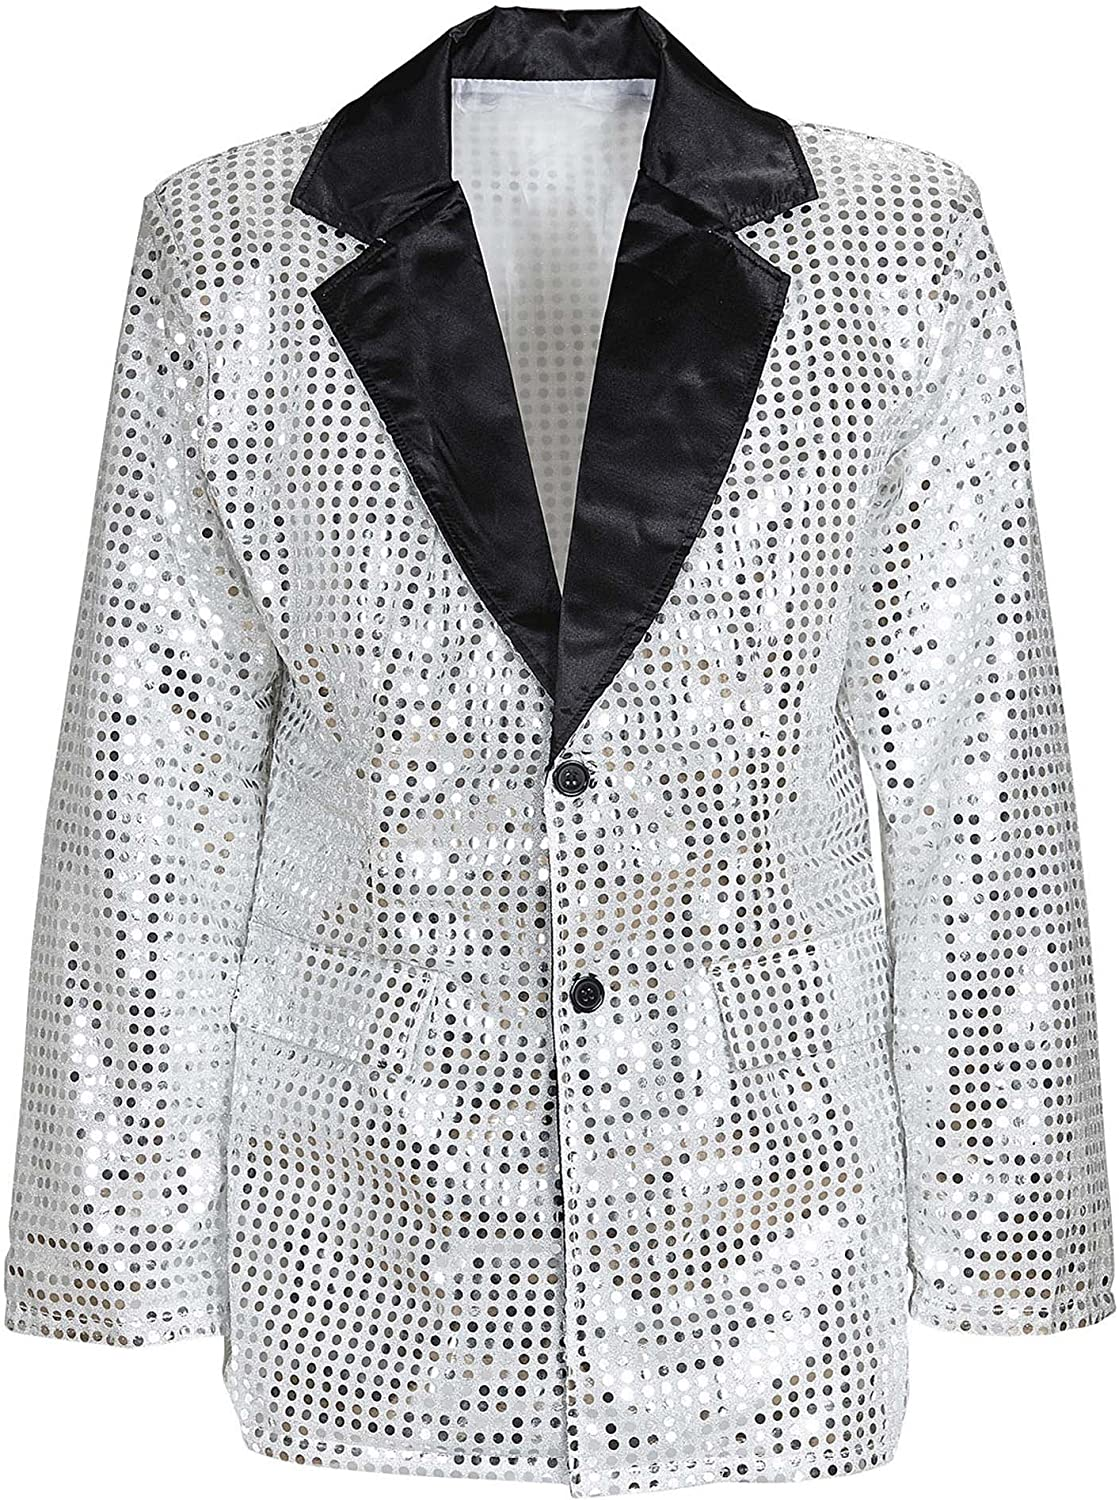 Sequin Jacket withSatin Collar Silver Accessory for Fancy Dress